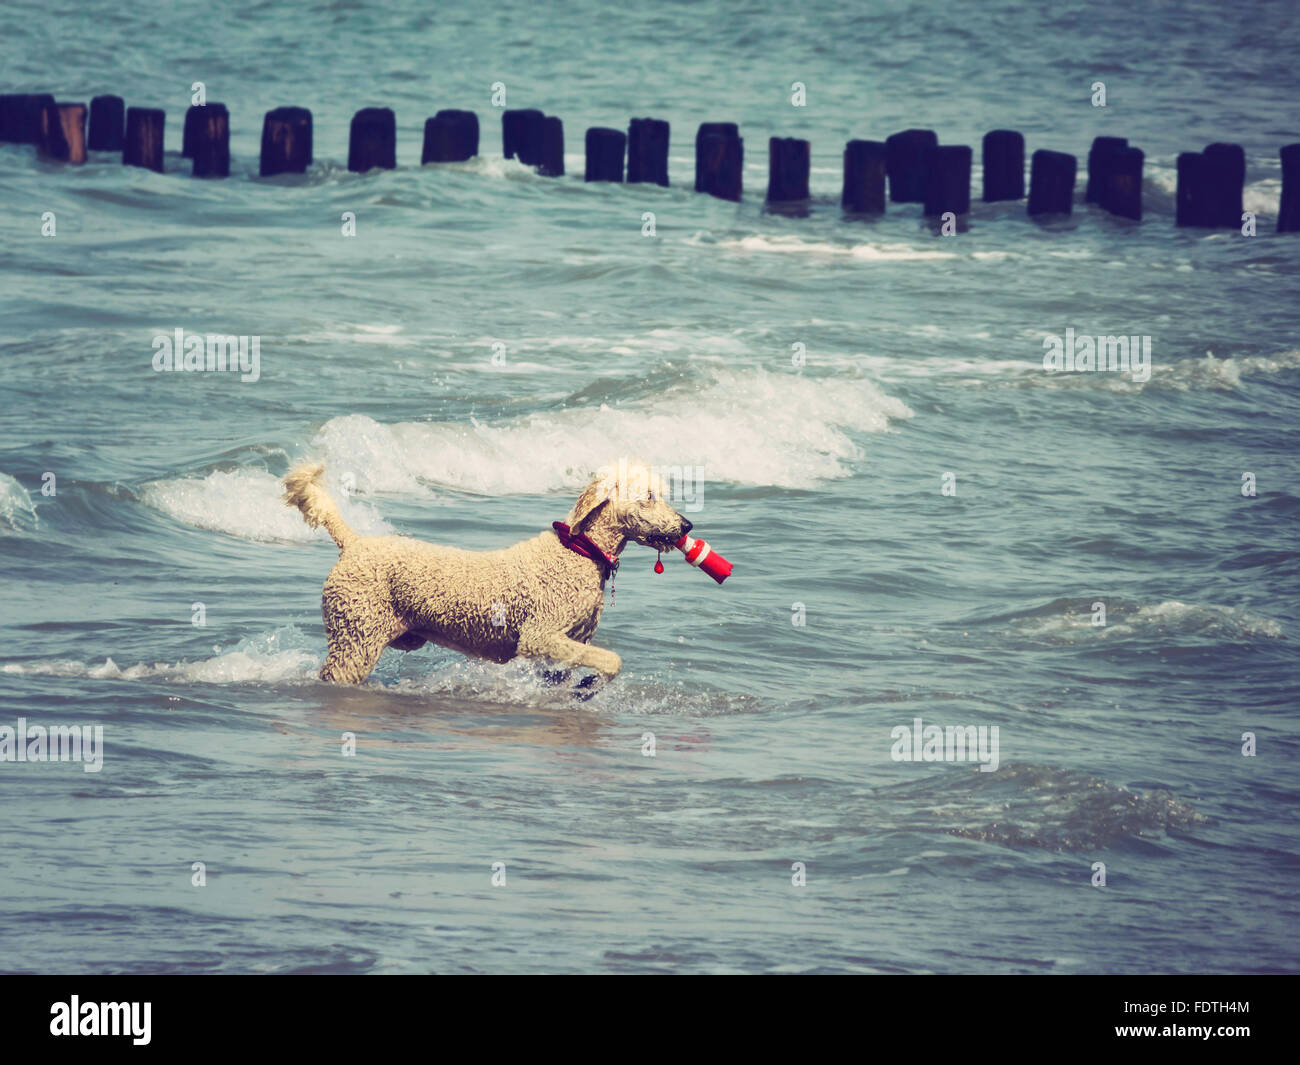 Poodle fetching object in ocean, retro toned with dark vignette - Stock Image